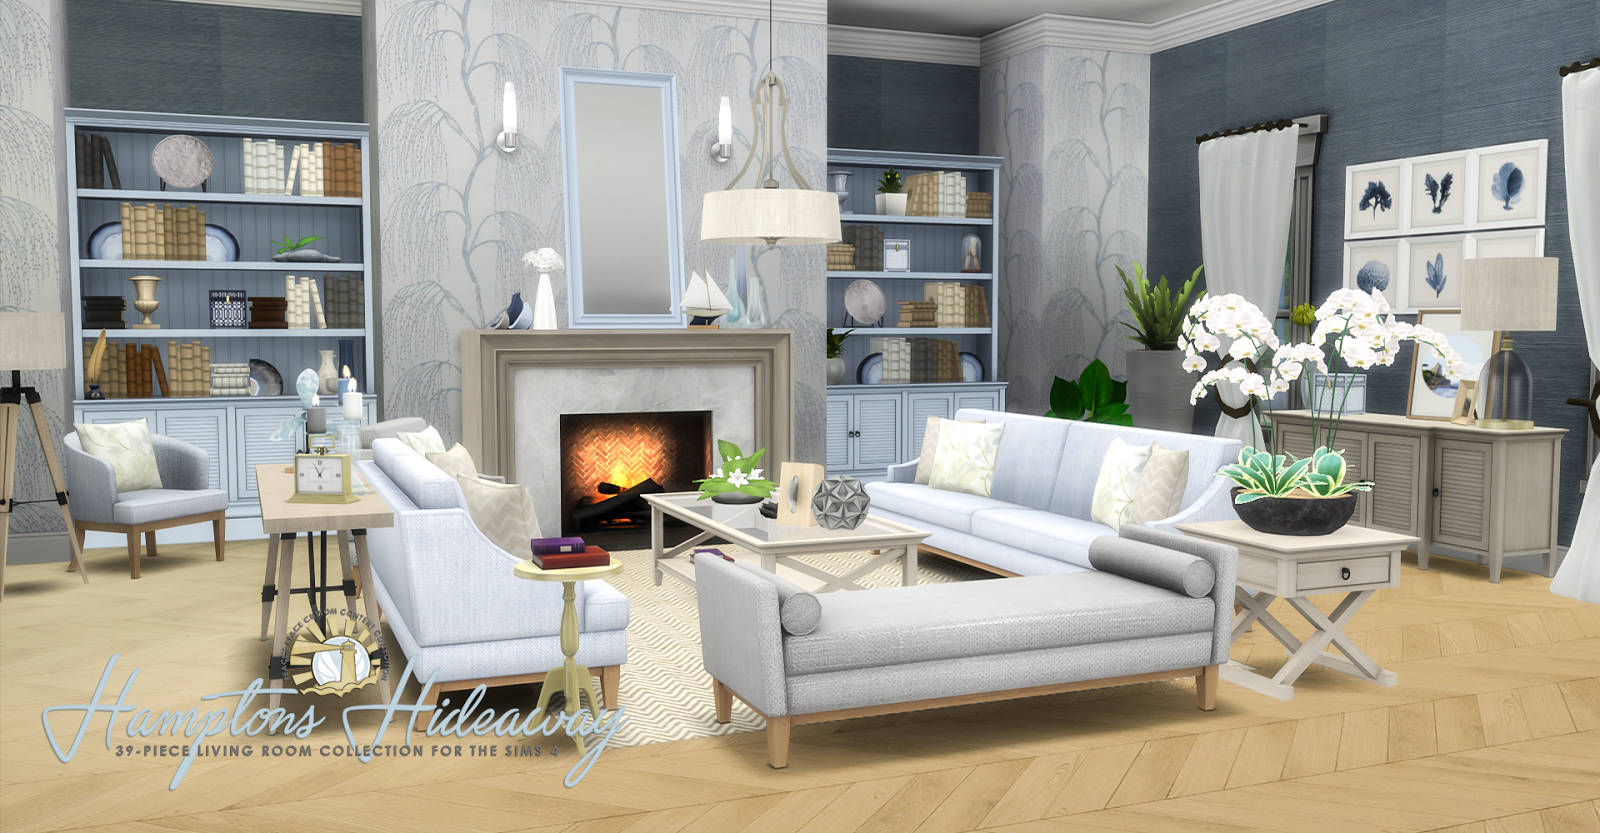 sims 4 cc's - the best: hampton hideaway living room set by, Badezimmer ideen